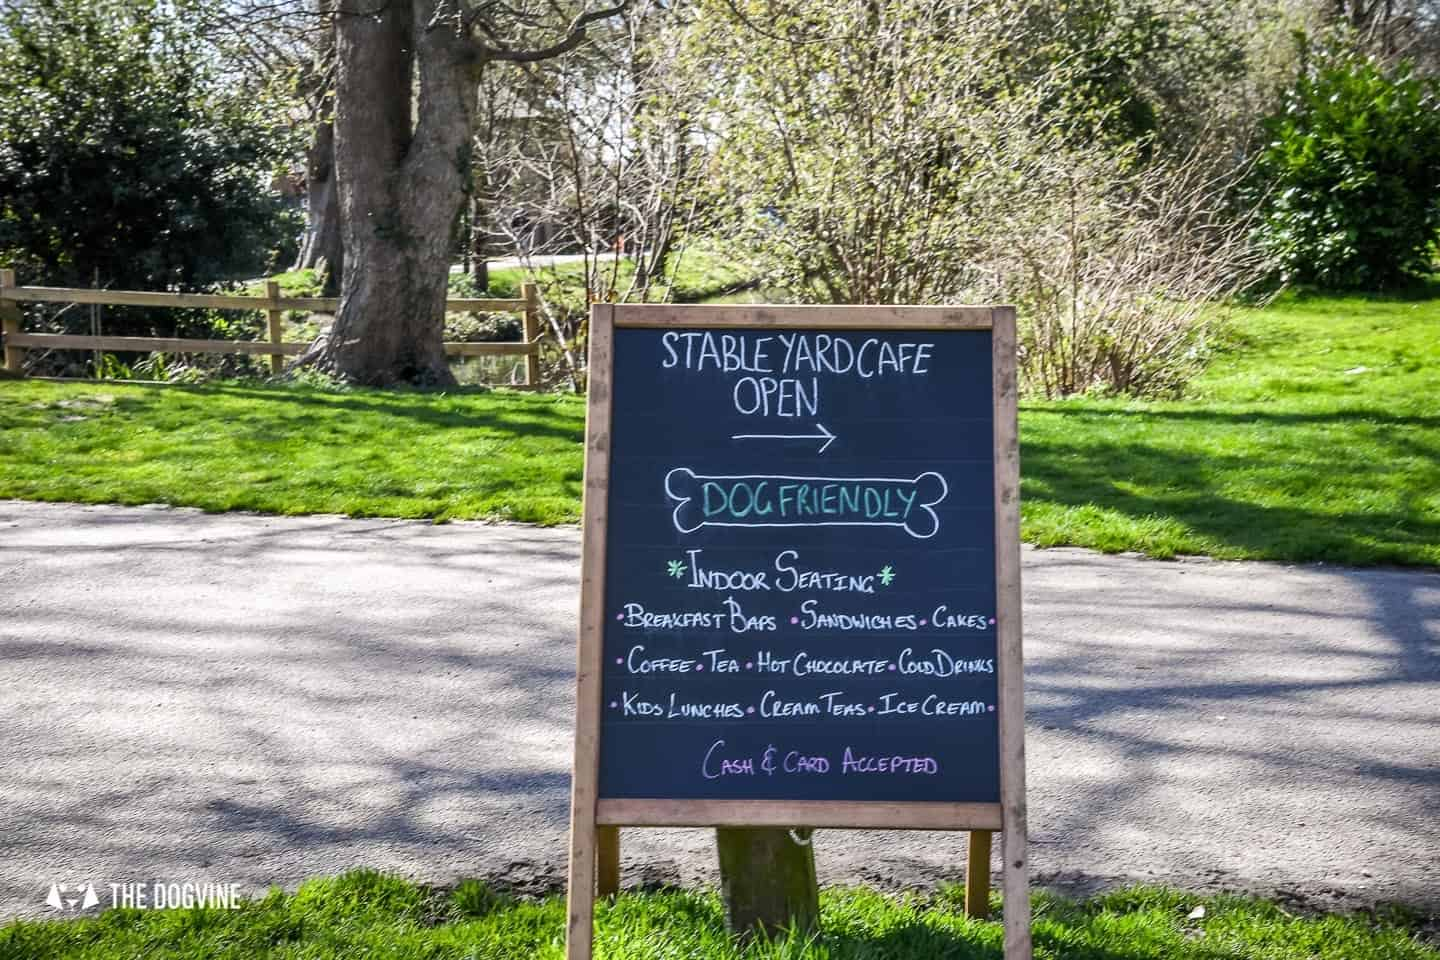 A Dogs Day Out to Dog-Friendly Morden Hall Park 6